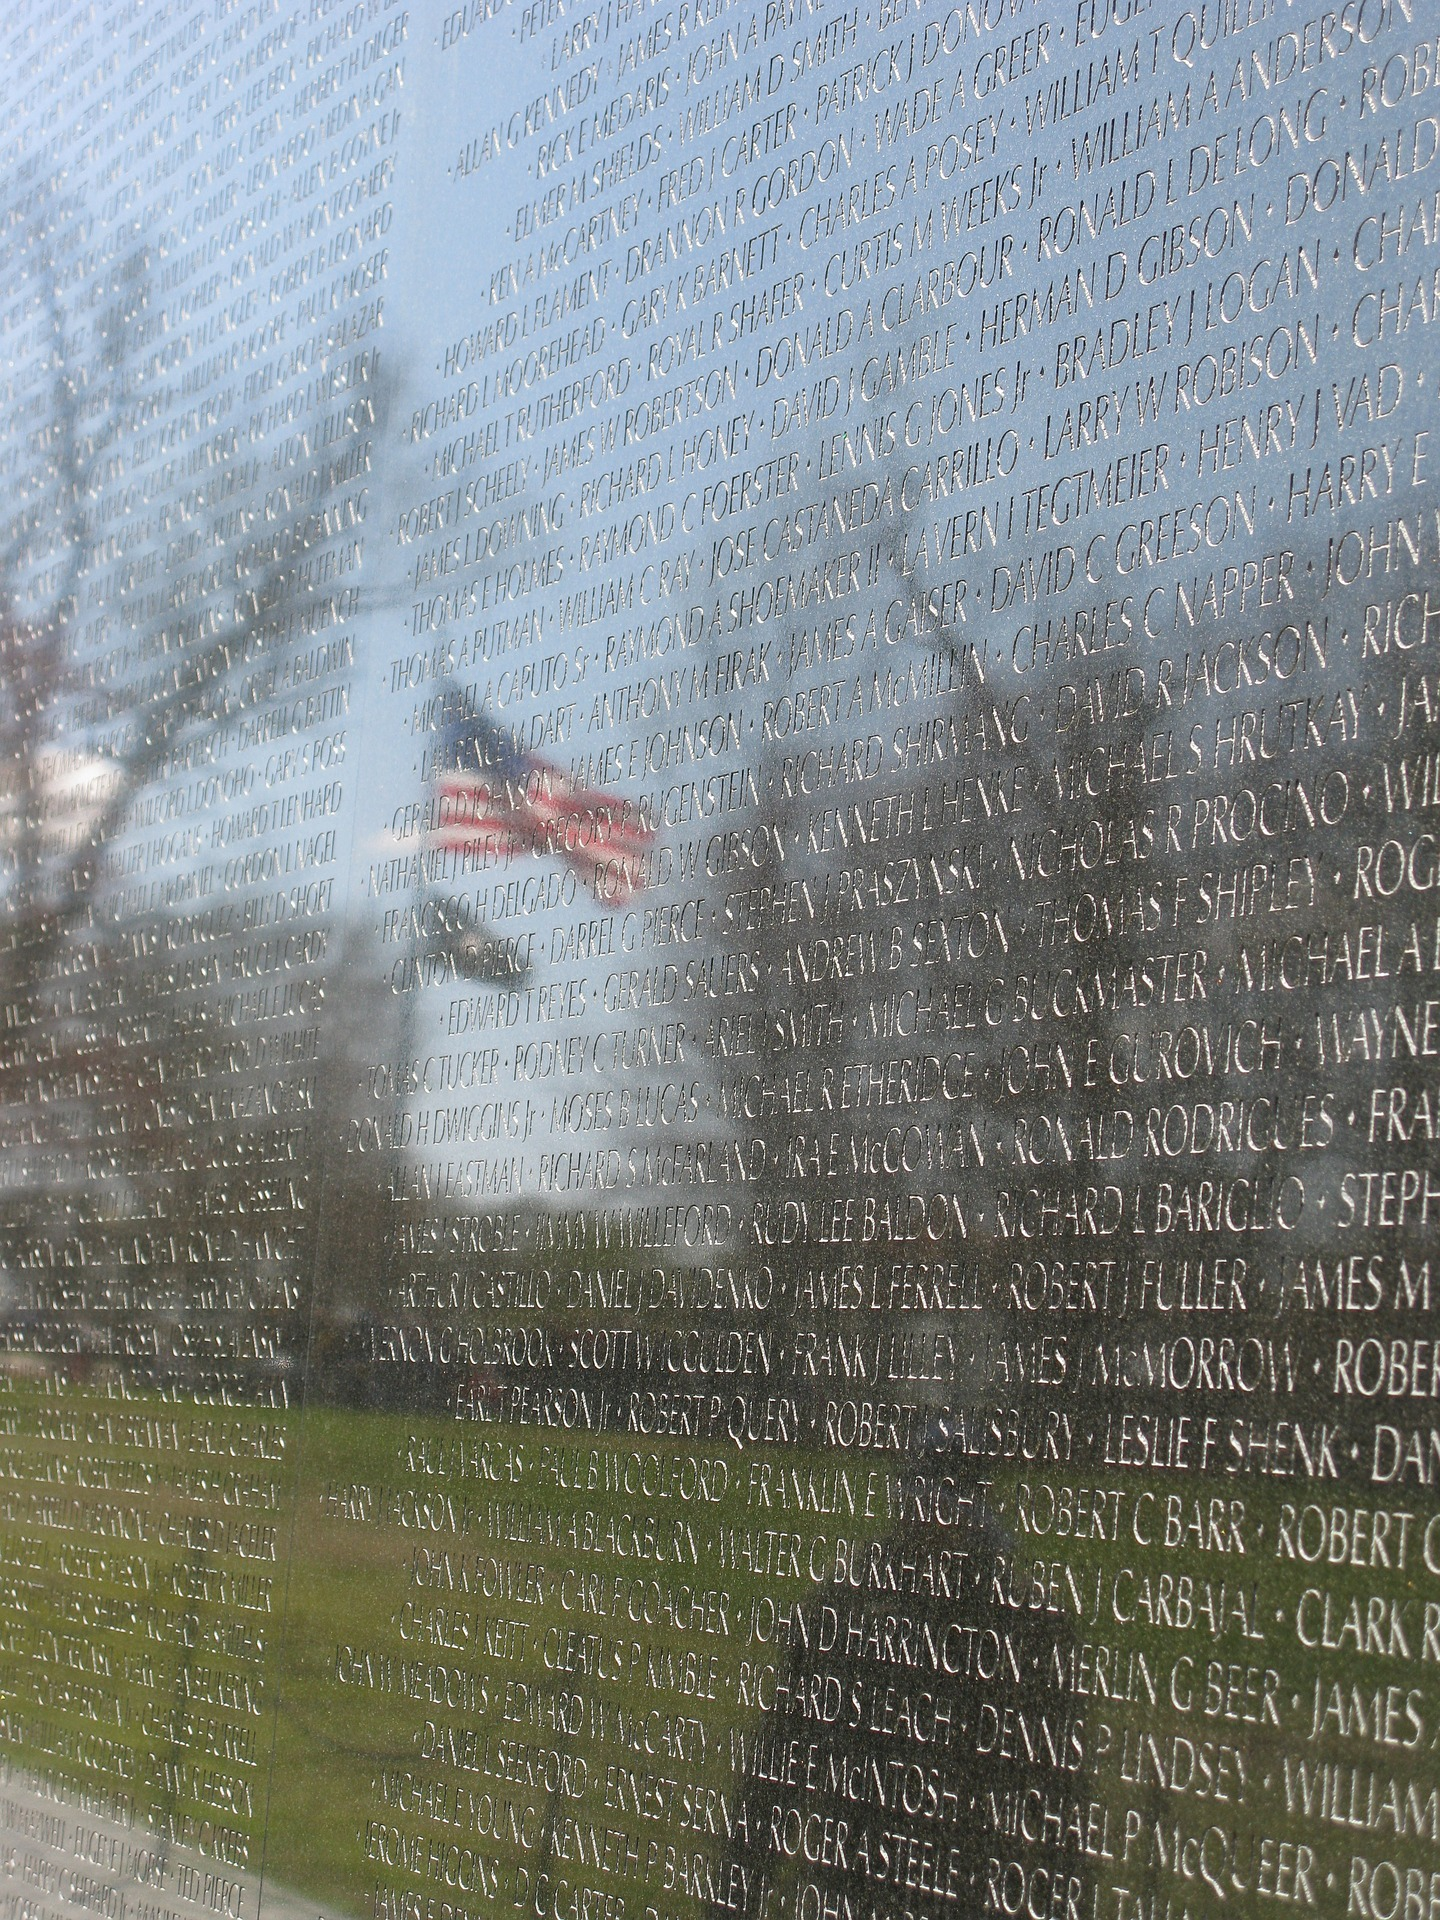 The Vietnam Memorial in Washington DC with a subdued reflection of the American flag, and the POW-MIA flag below it. Hispanics only represented 4.5% of the US population in 1970, but a study by Dr. Ralph Guzman showed Hispanics represented 19% of the casualties suffered during the Vietnam War (during the time frame studied).